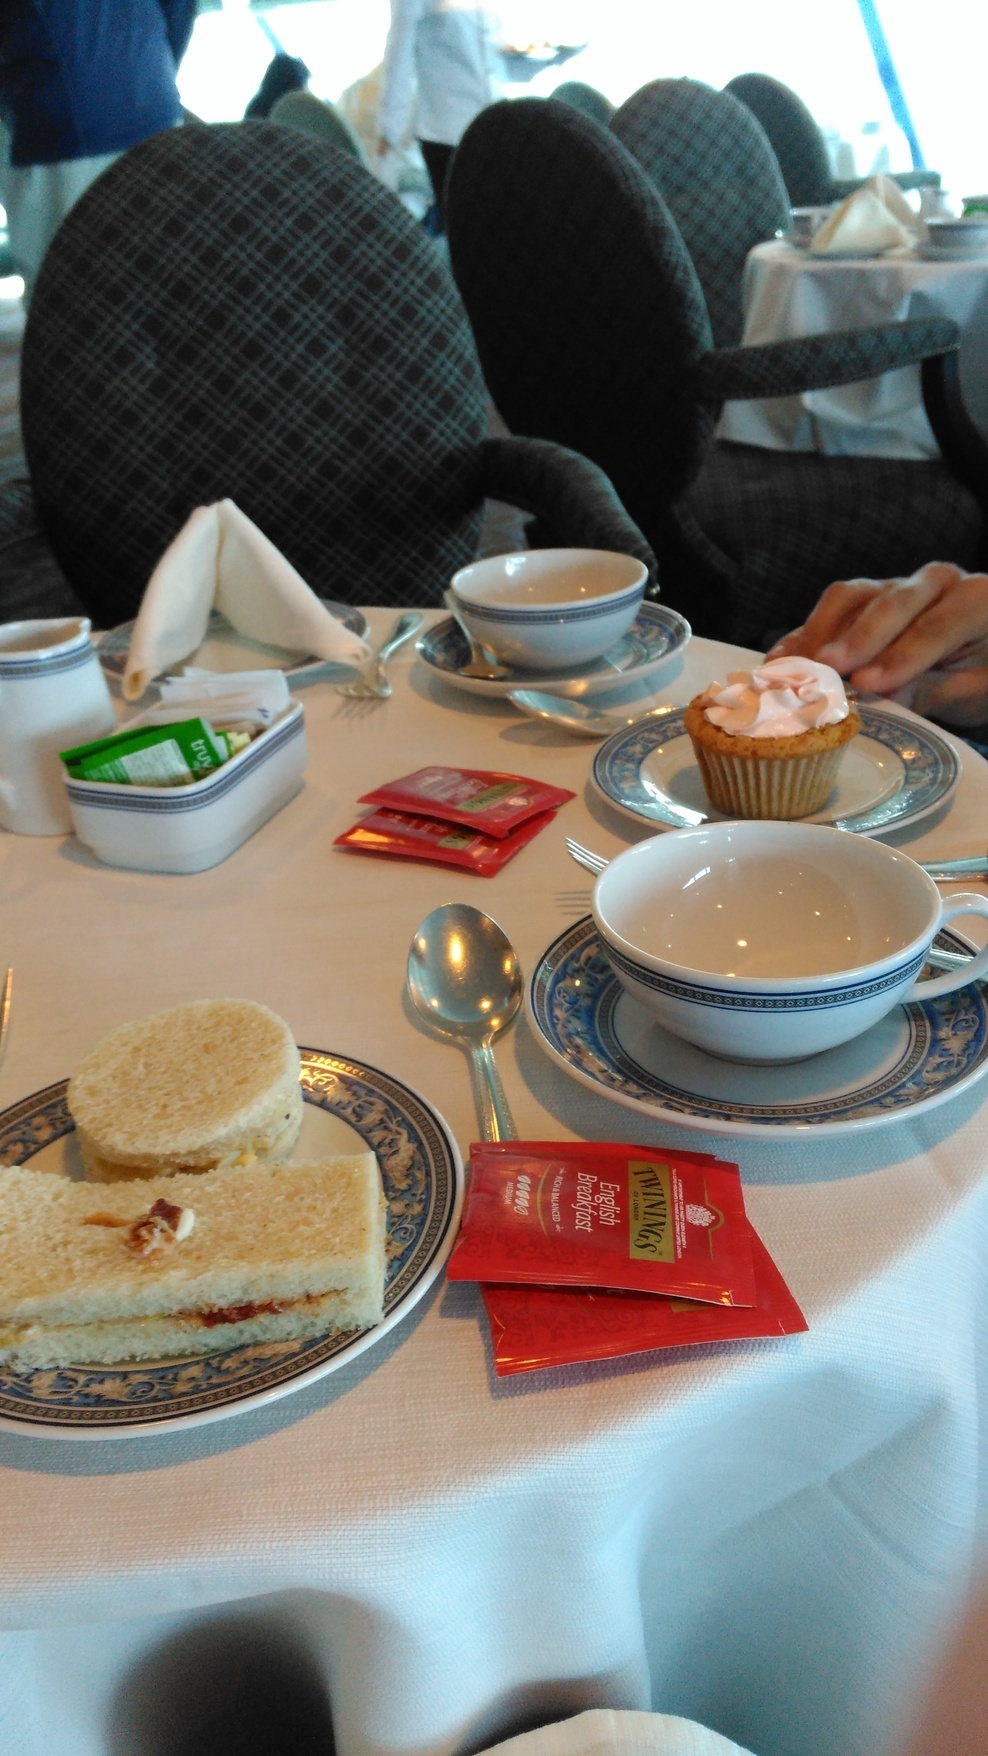 Afternoon tea in a gale force storm